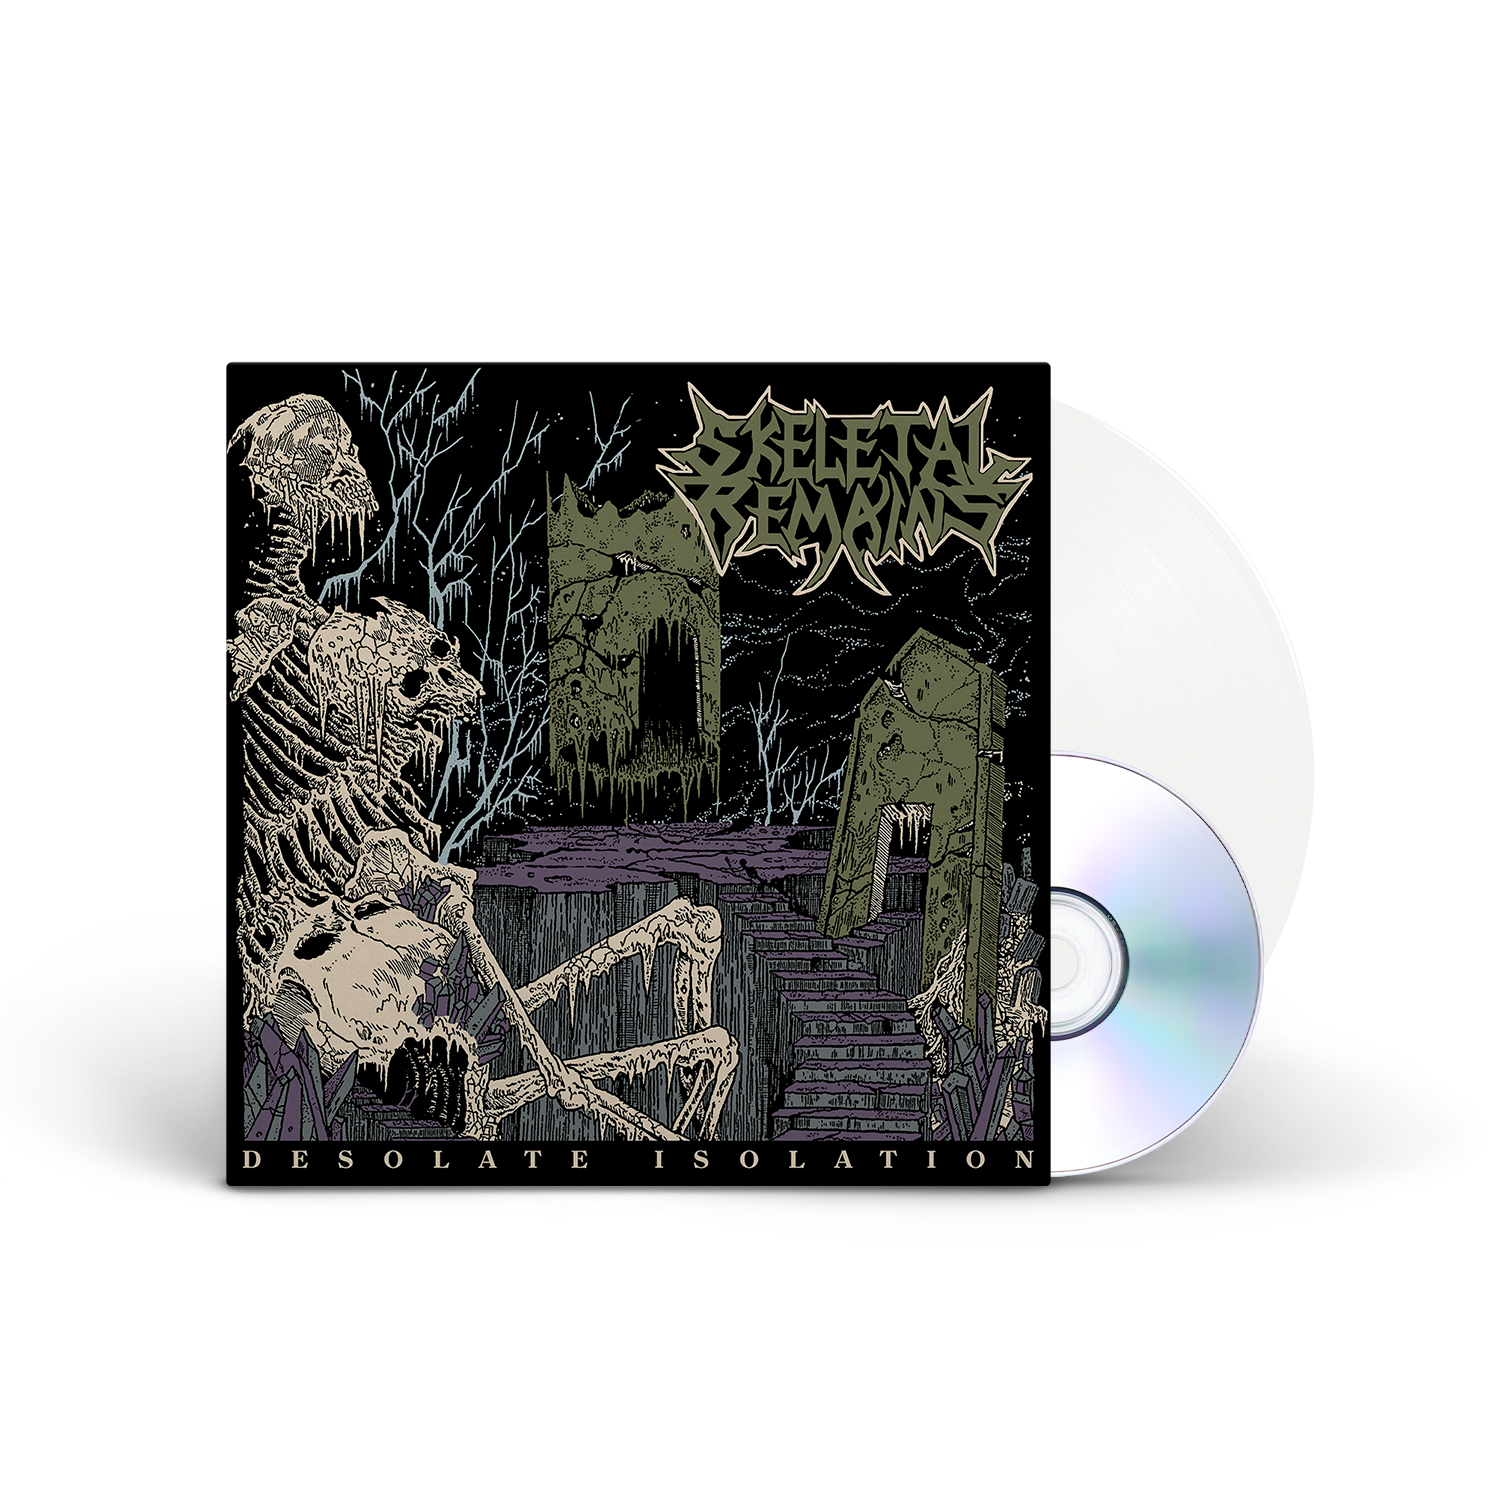 Skeletal Remains - Desolate Isolation - 10th Anniversary Edition Ultra Clear Vinyl LP + CD